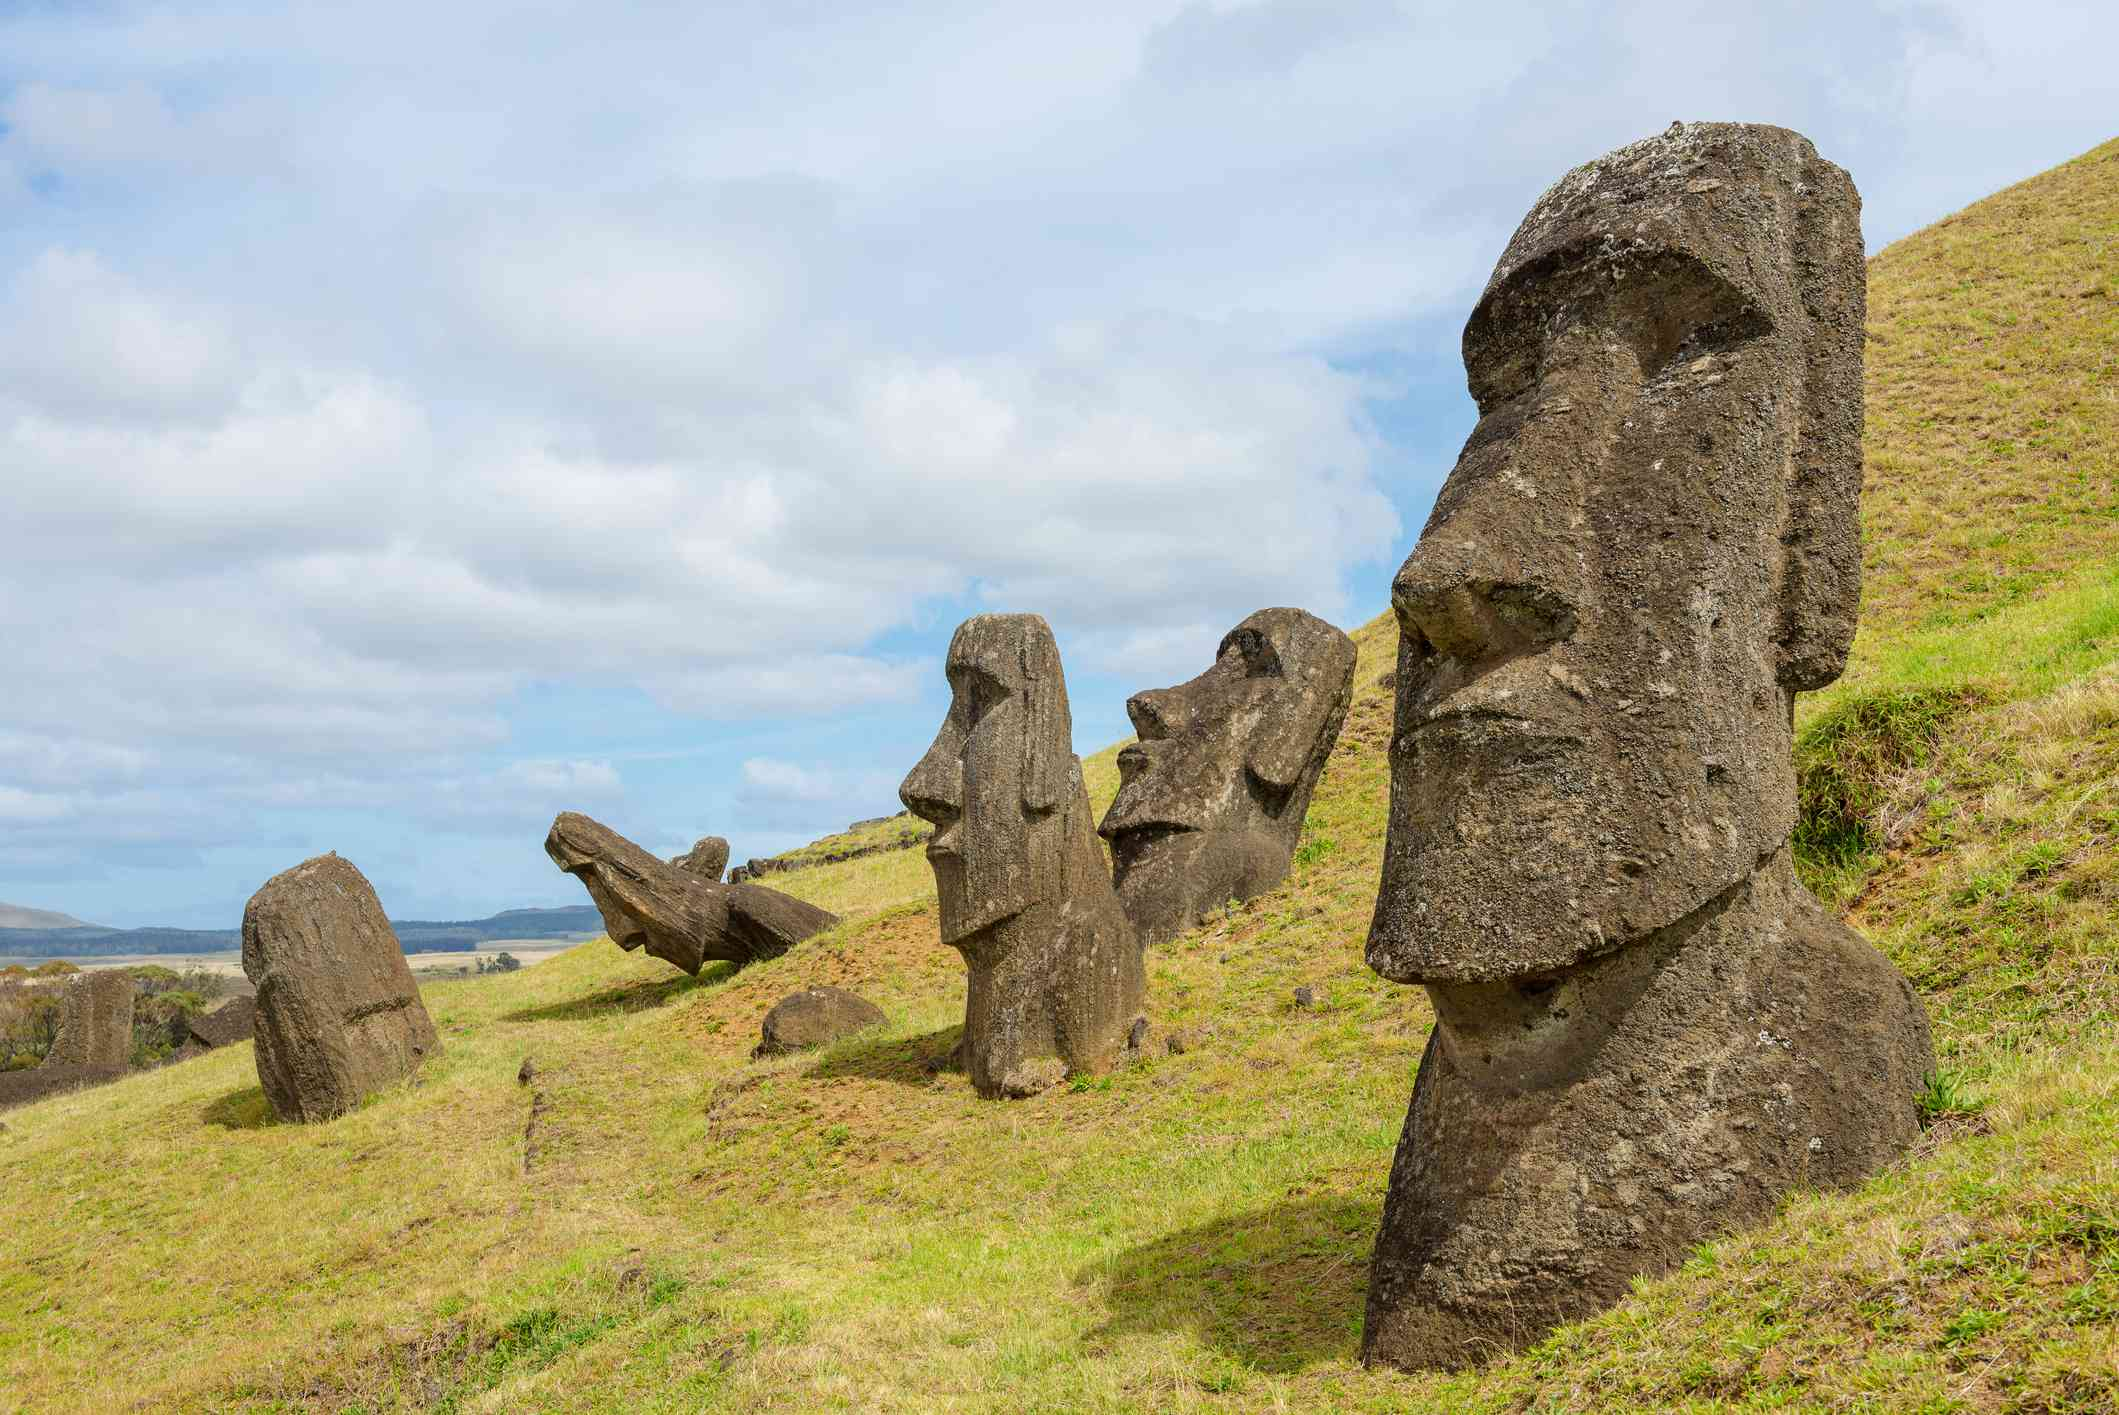 Up-close view of giant stone sculptures on Easter Island